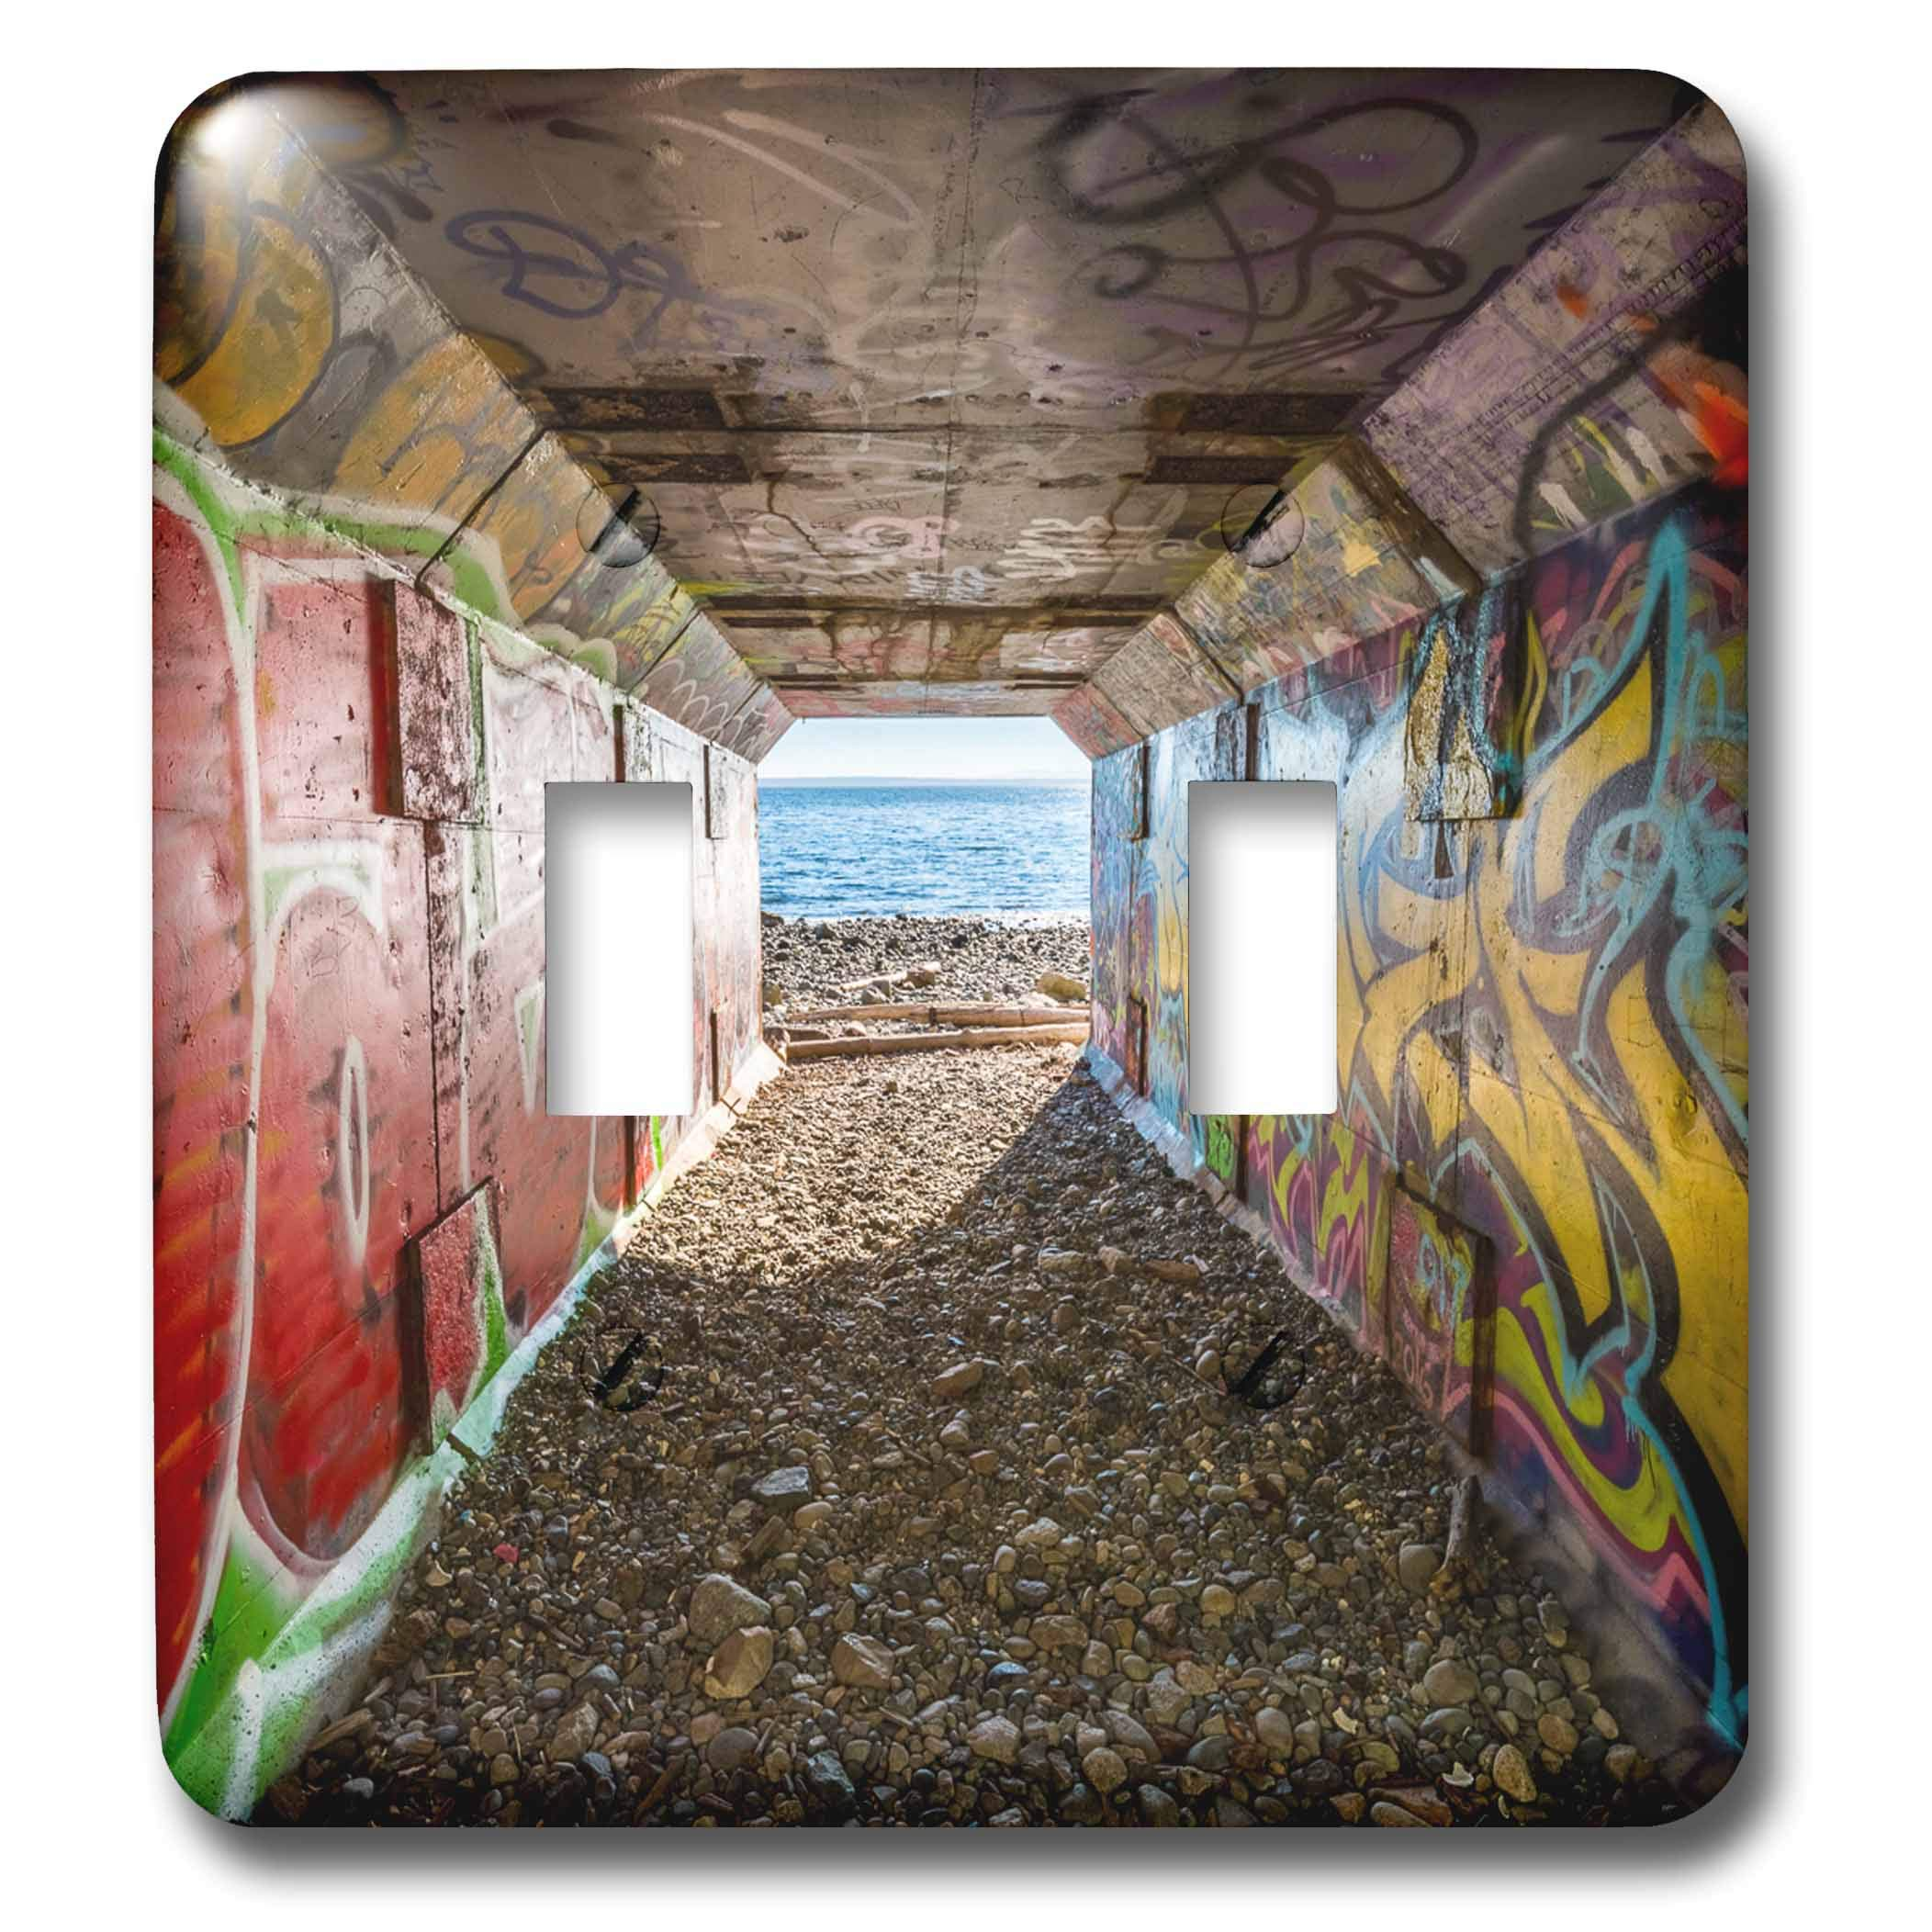 3dRose Elysium Photography - Landscape - Graffiti on rail tunnel, 1001 Steps, Surrey, British Columbia - Light Switch Covers - double toggle switch (lsp_289564_2)